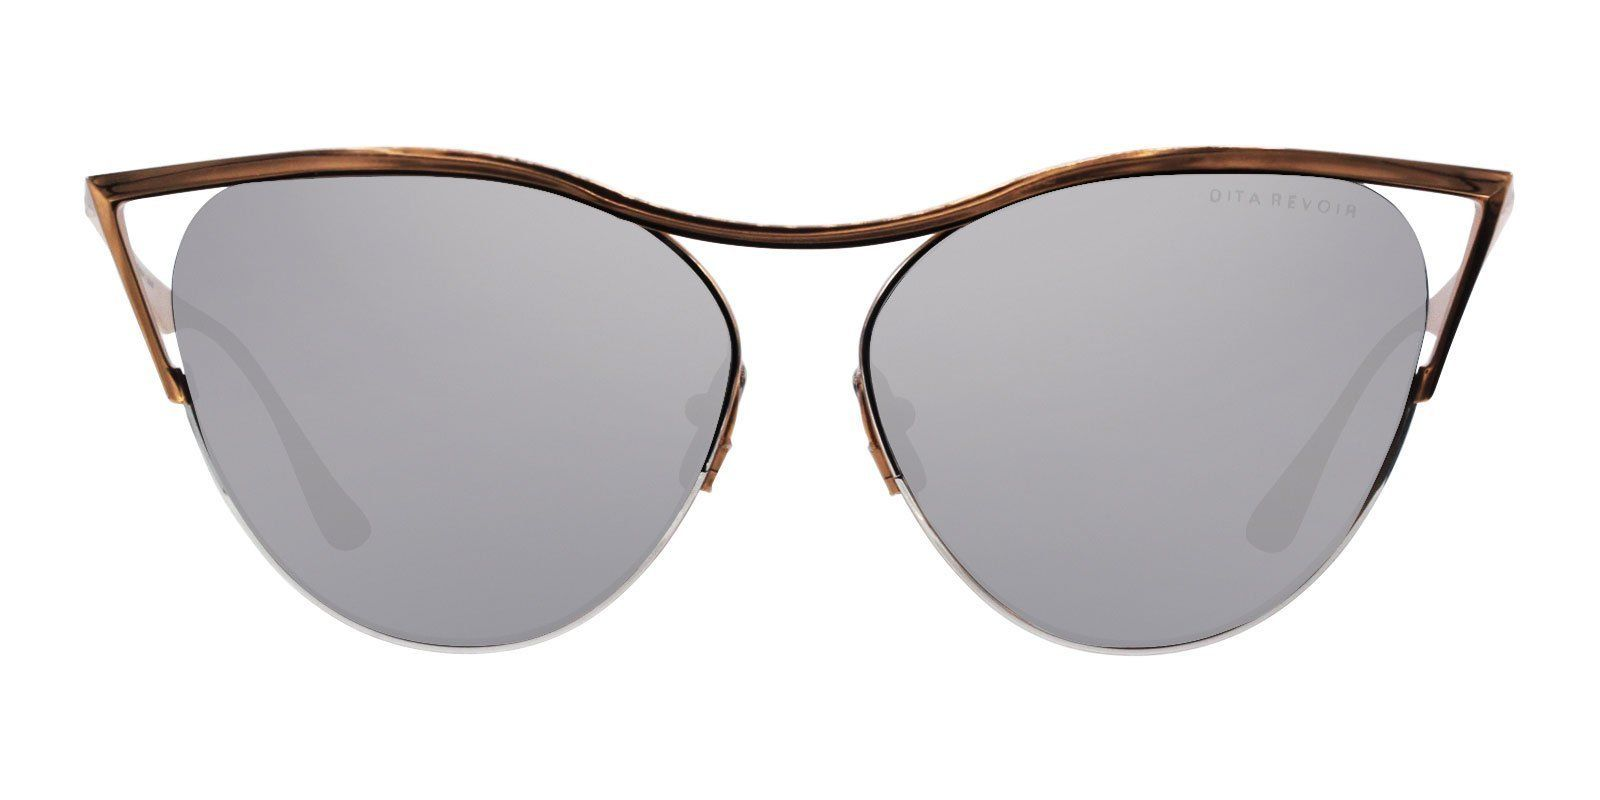 33892dc78cb Dita - Revoir Rose Gold - Gray sunglasses in 2018